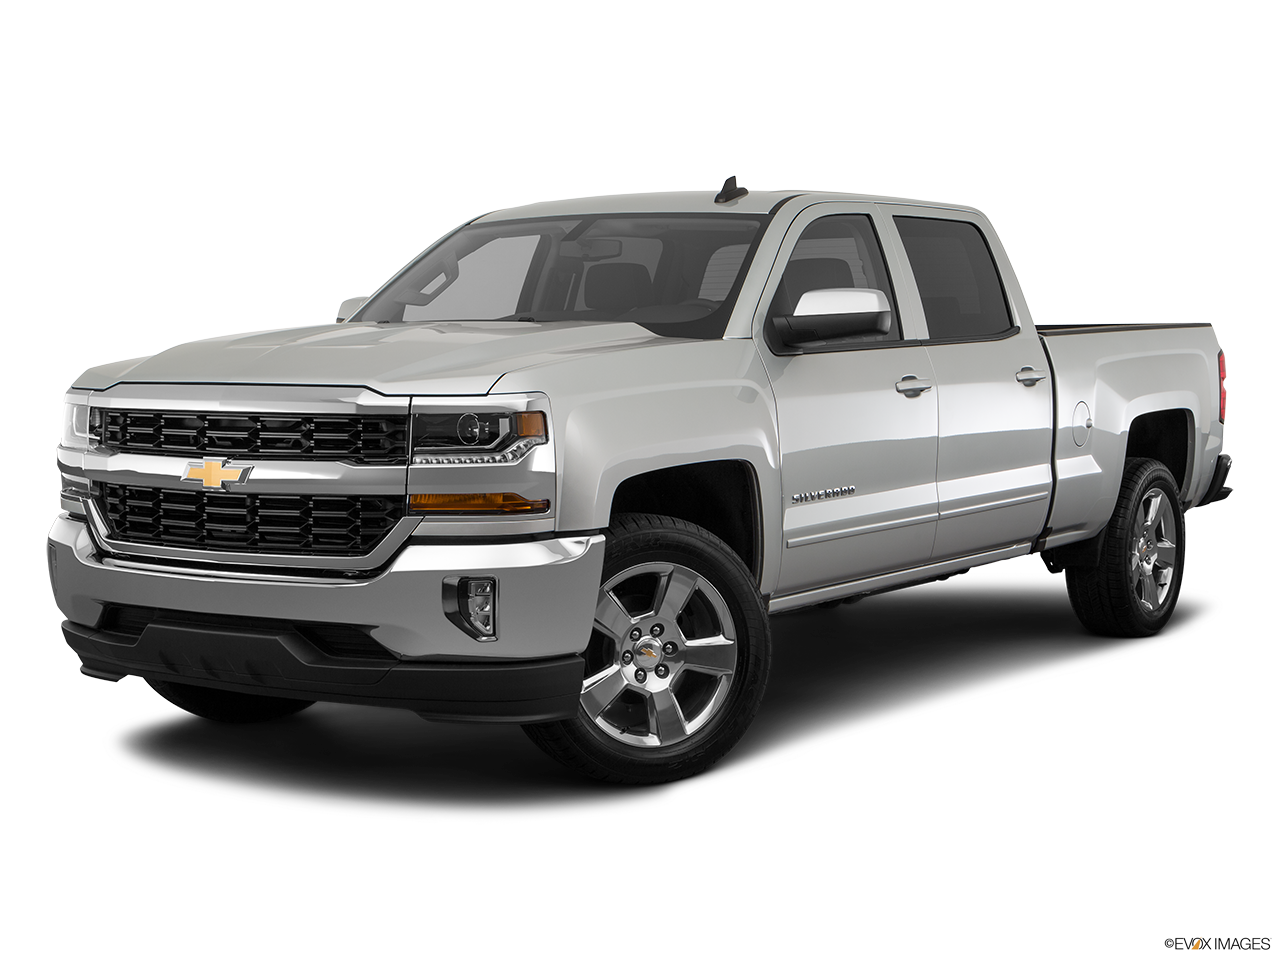 drive a 2017 chevrolet silverado 1500 at champion chevrolet in reno. Cars Review. Best American Auto & Cars Review